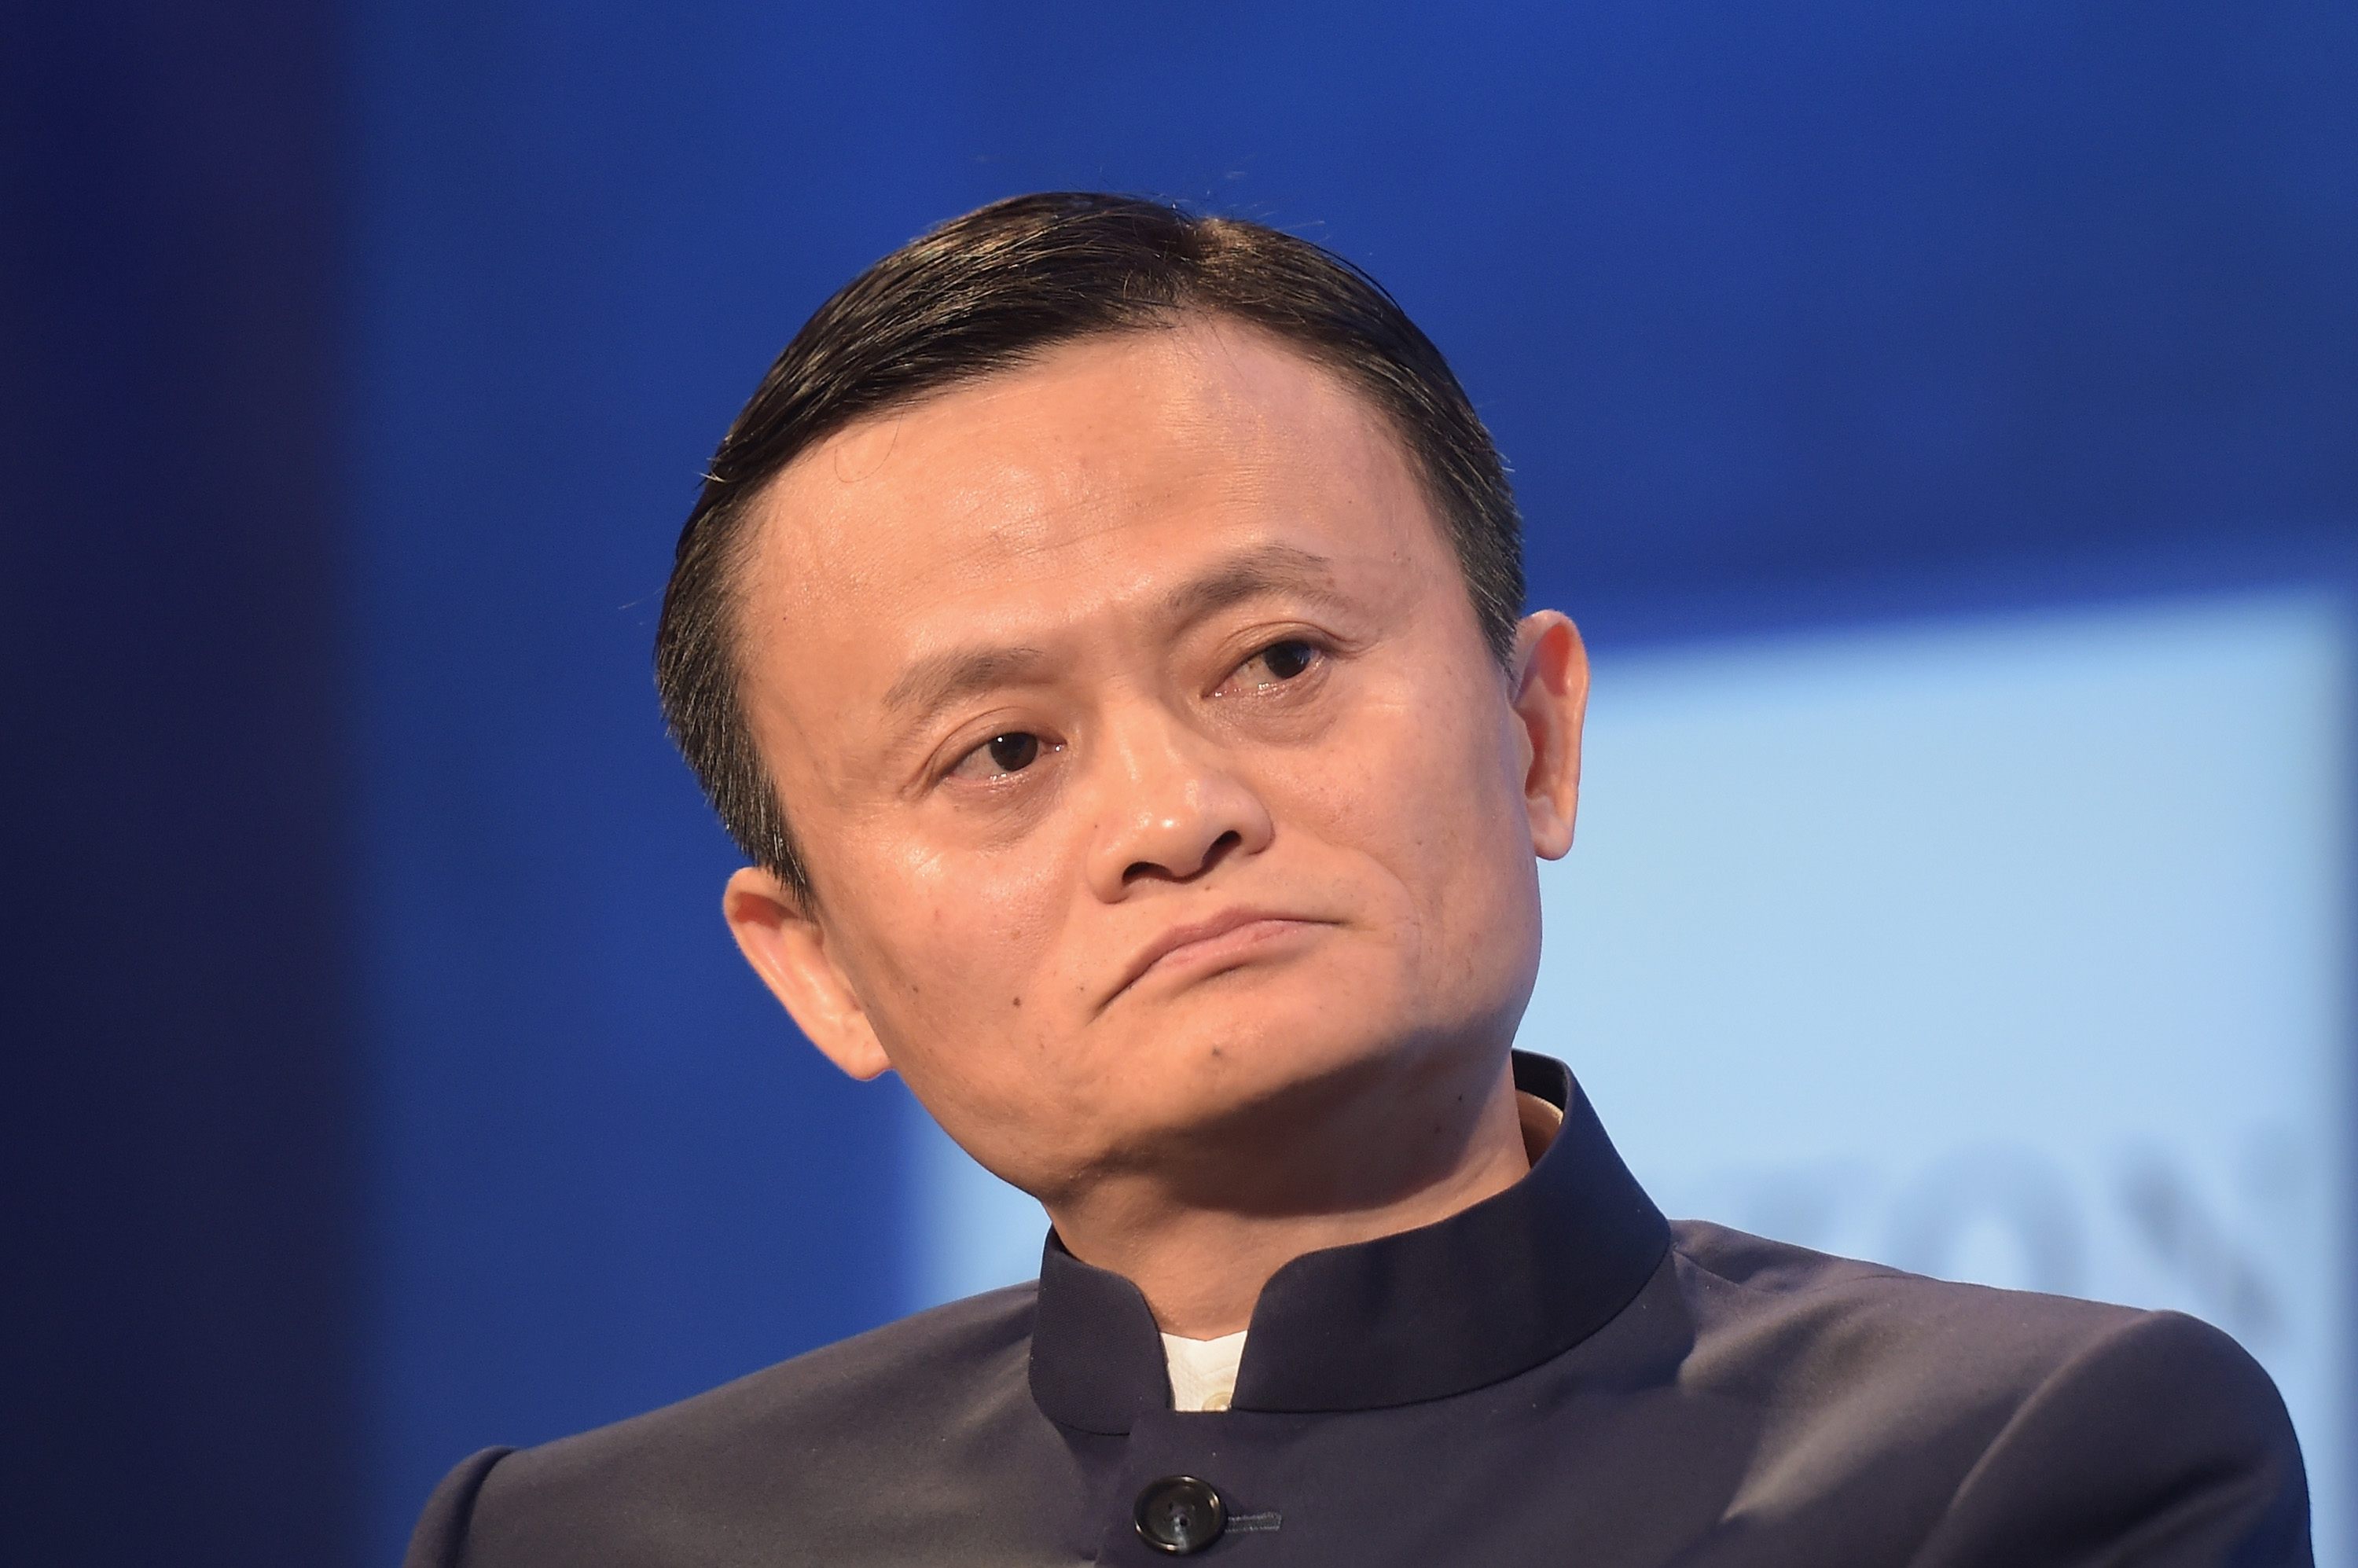 Jack Ma Alibaba Is Still Growing Despite China S Slowing Economy Fortune In this post i am going to share some little known. https fortune com 2015 09 24 alibaba jack ma